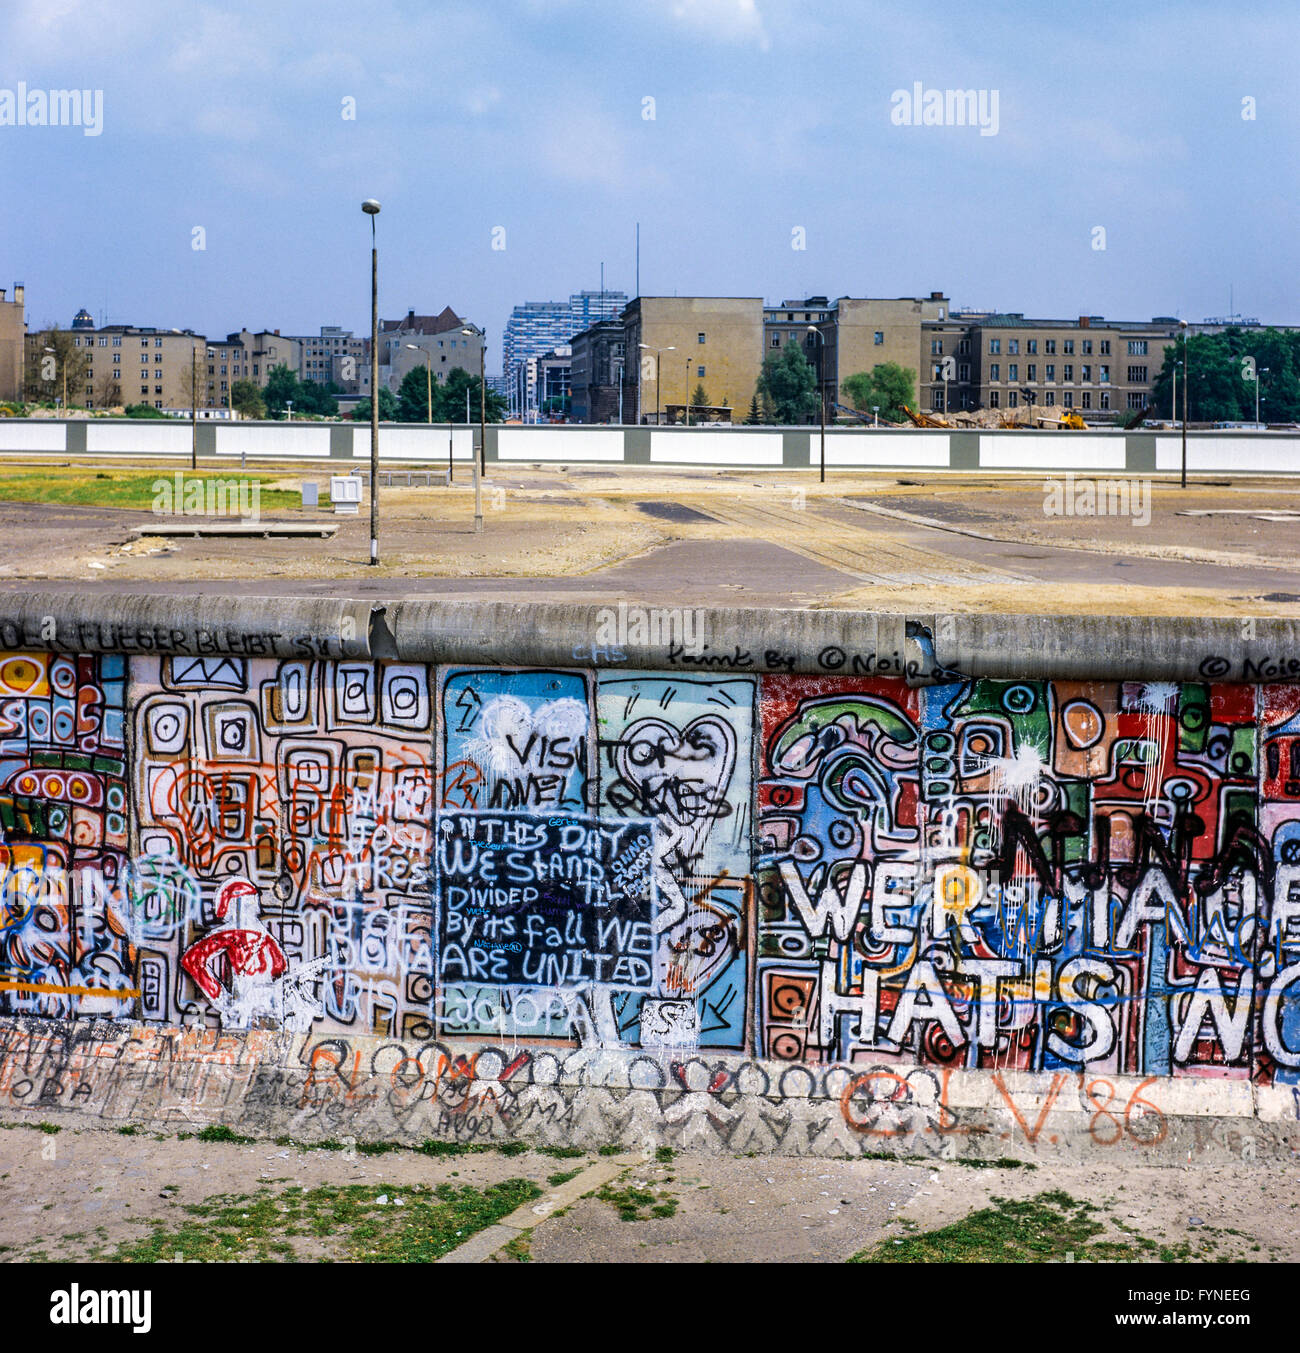 August 1986, Berlin wall graffitis at Potsdamer Platz square with view over Leipziger Platz square, death strip, - Stock Image